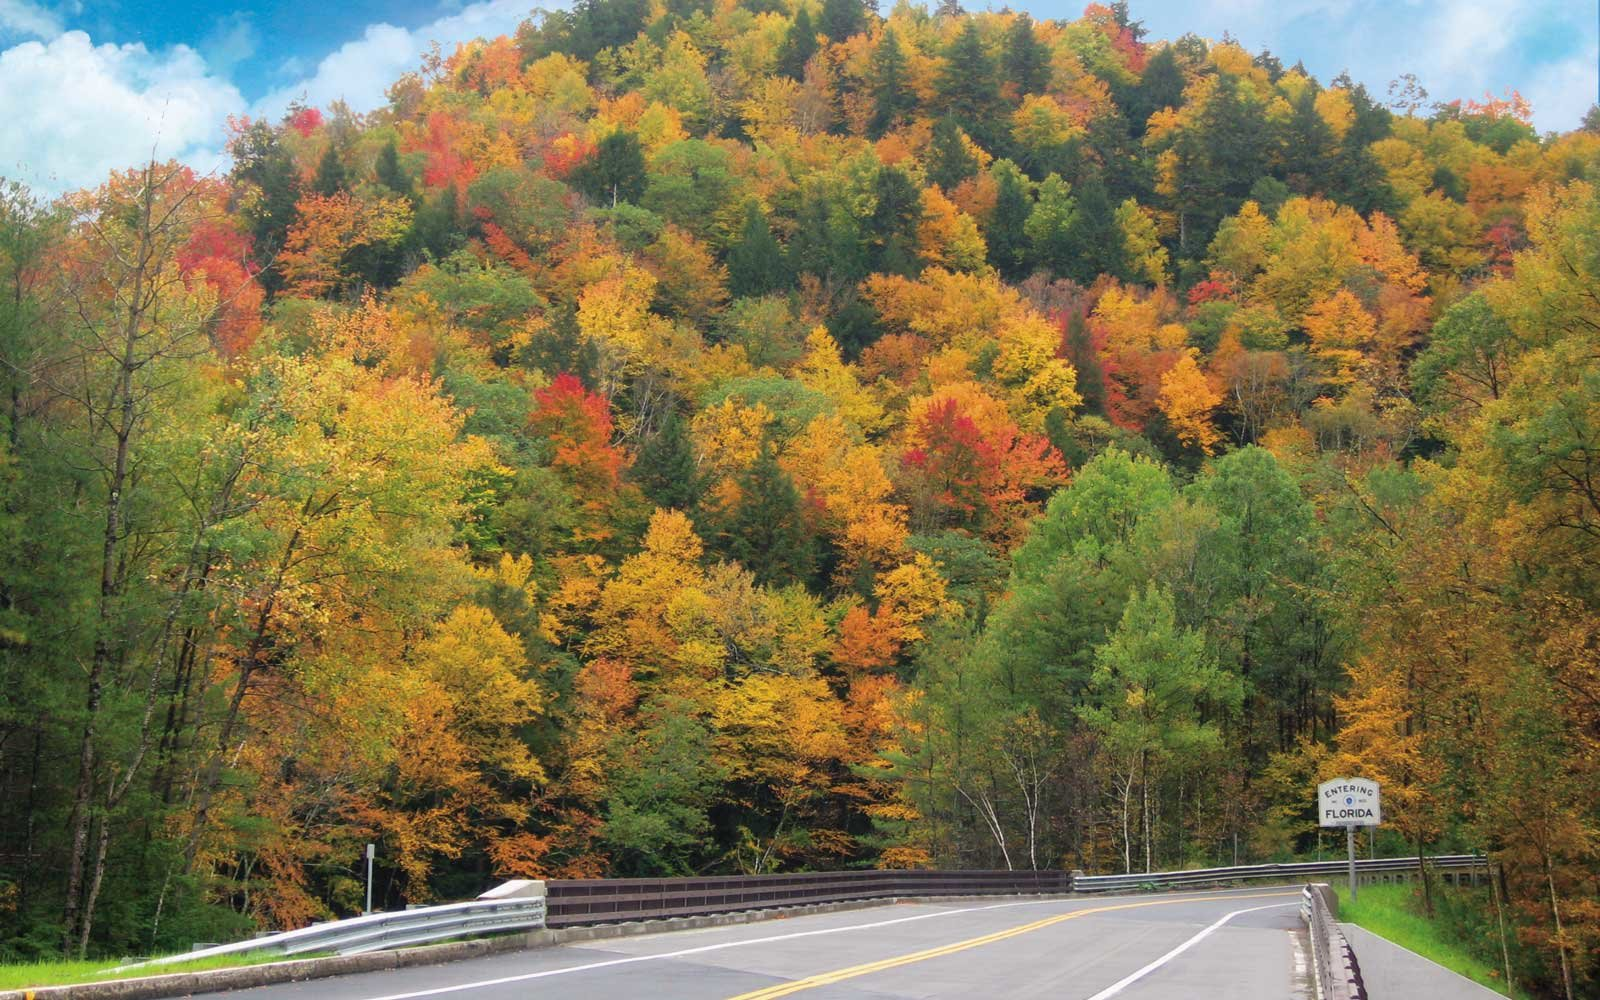 Entering the town of Florida, in the Massachusetts Mohawk Trail region, in autumn